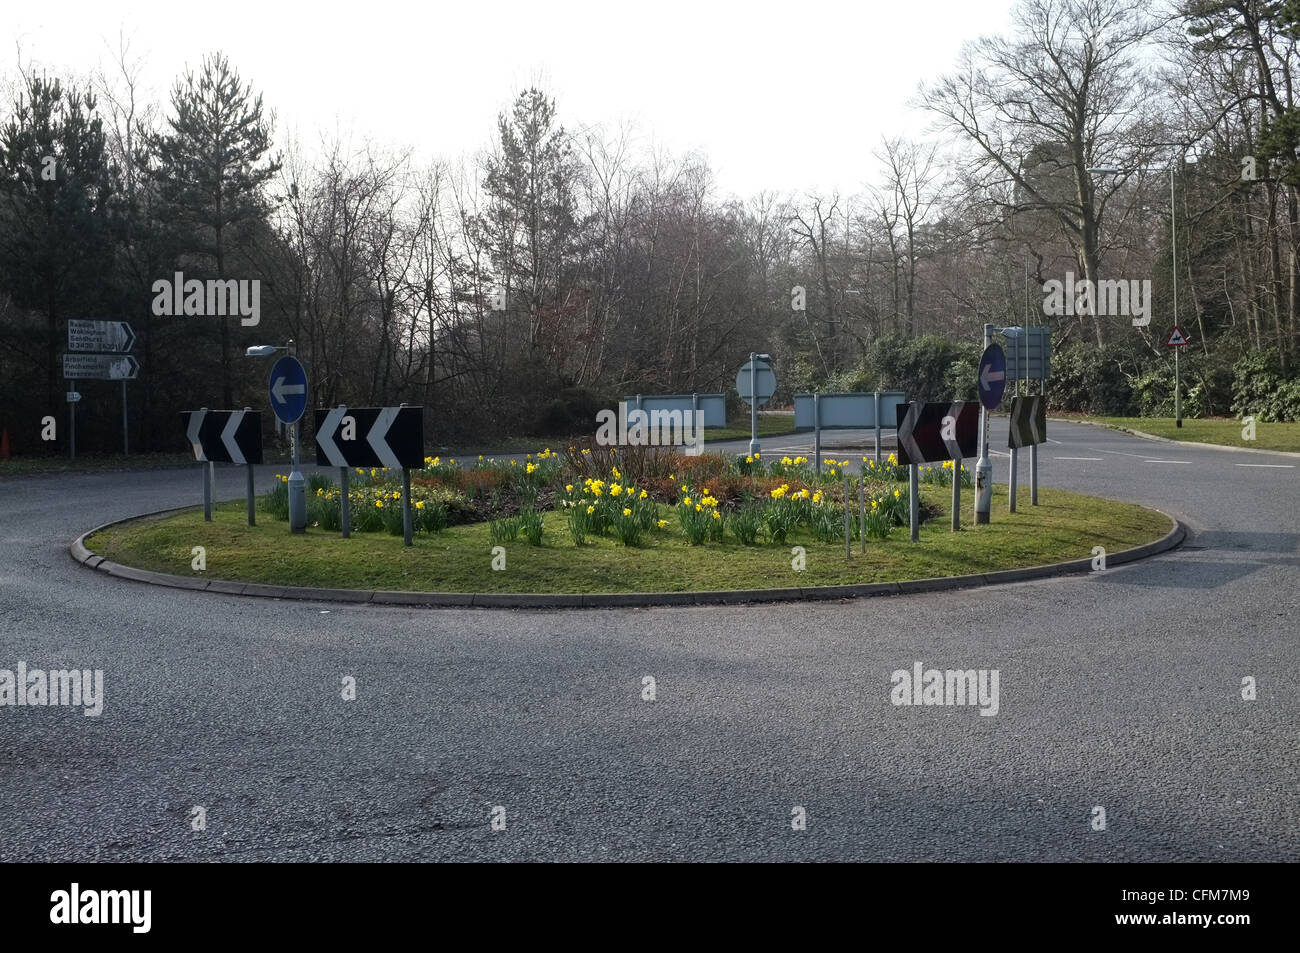 Roundabout in Springtime, Junction of Nine Mile Ride & Old Wokingham Road - Stock Image